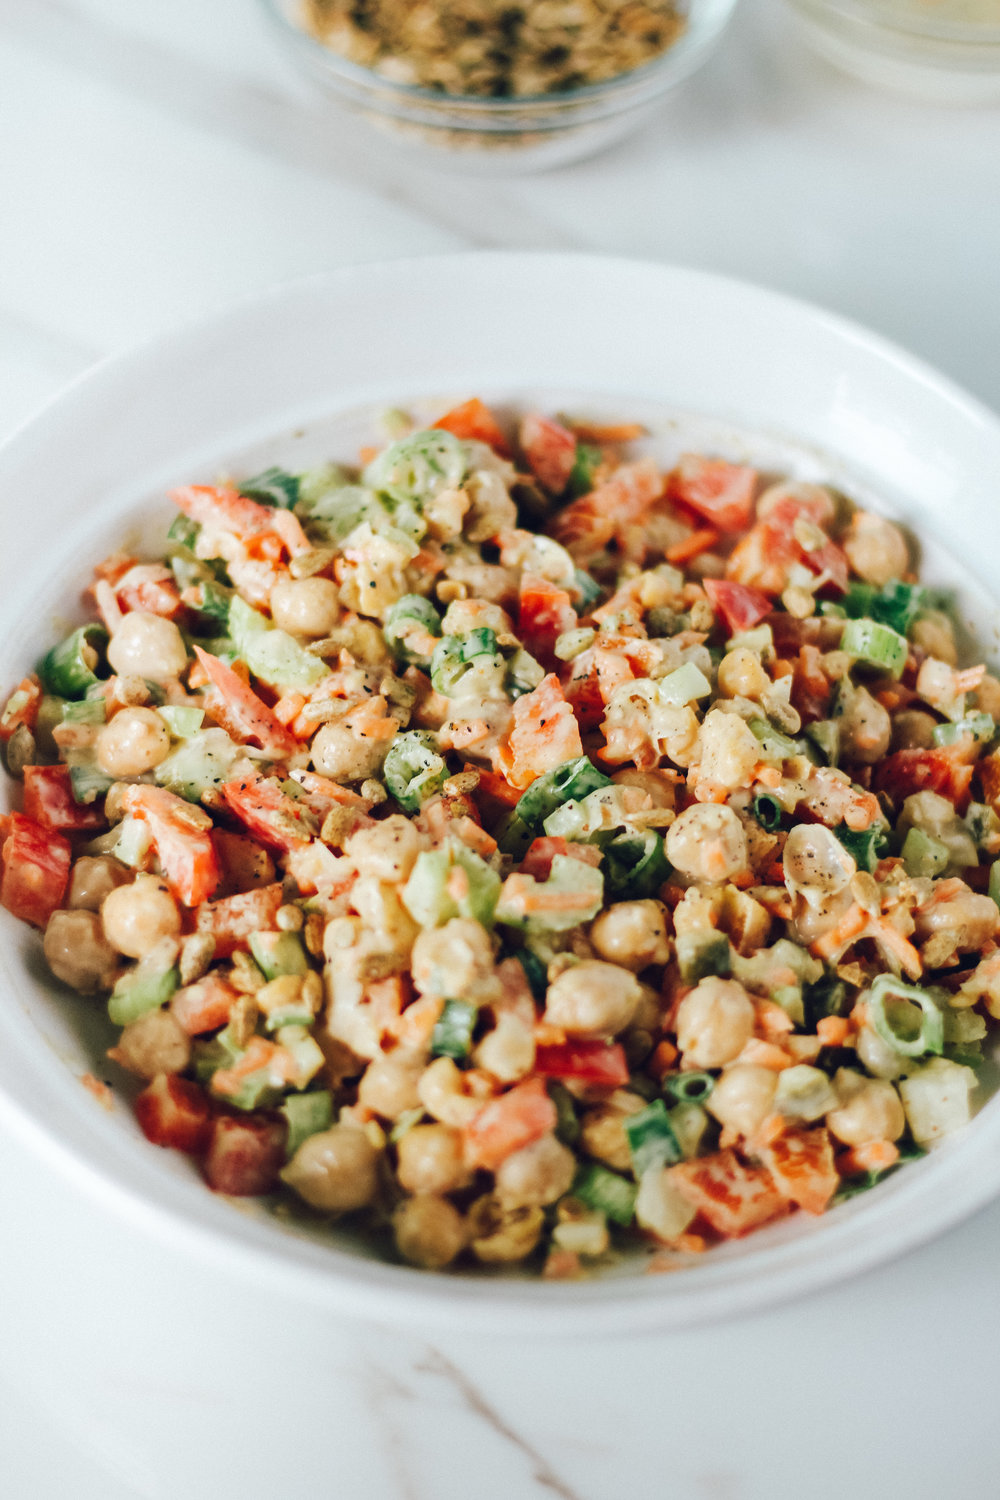 Healthy Chickpea salad meal prep 3 ways Live Well and Grateful